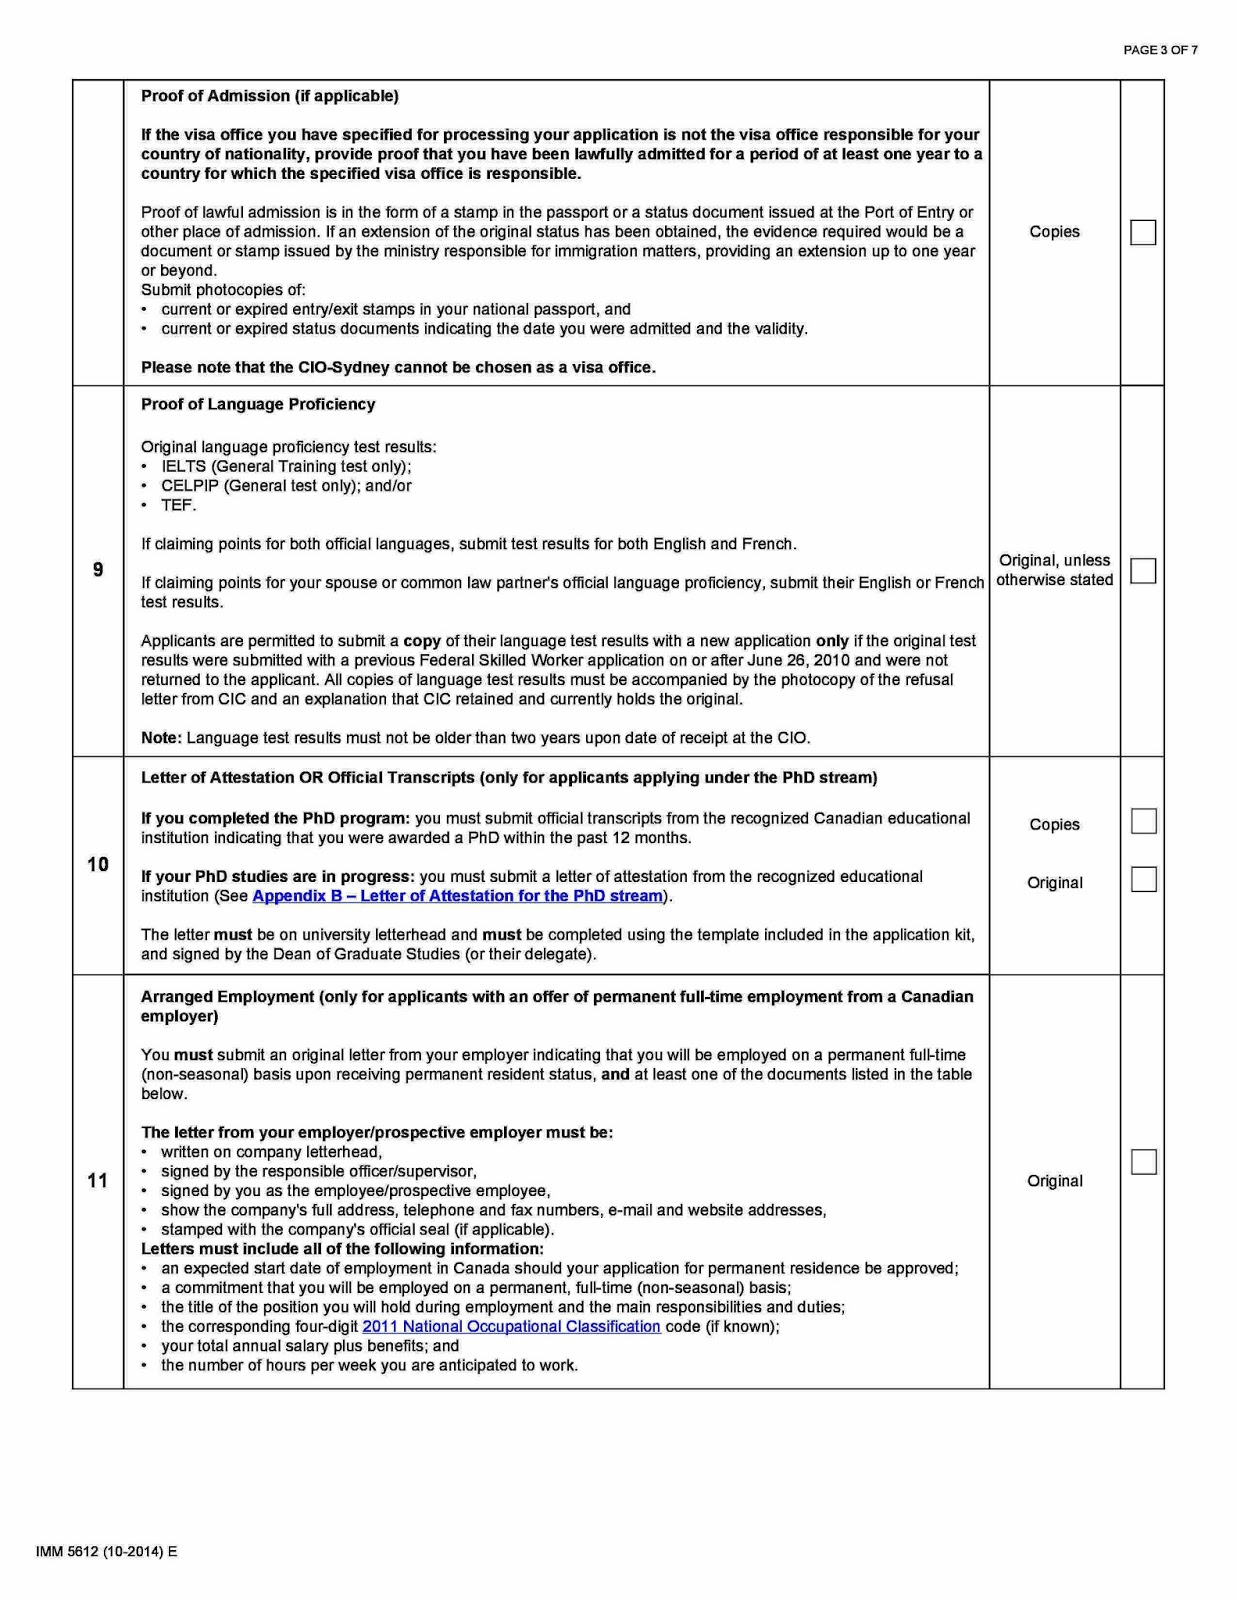 canada immigration document checklist for federal skilled worker